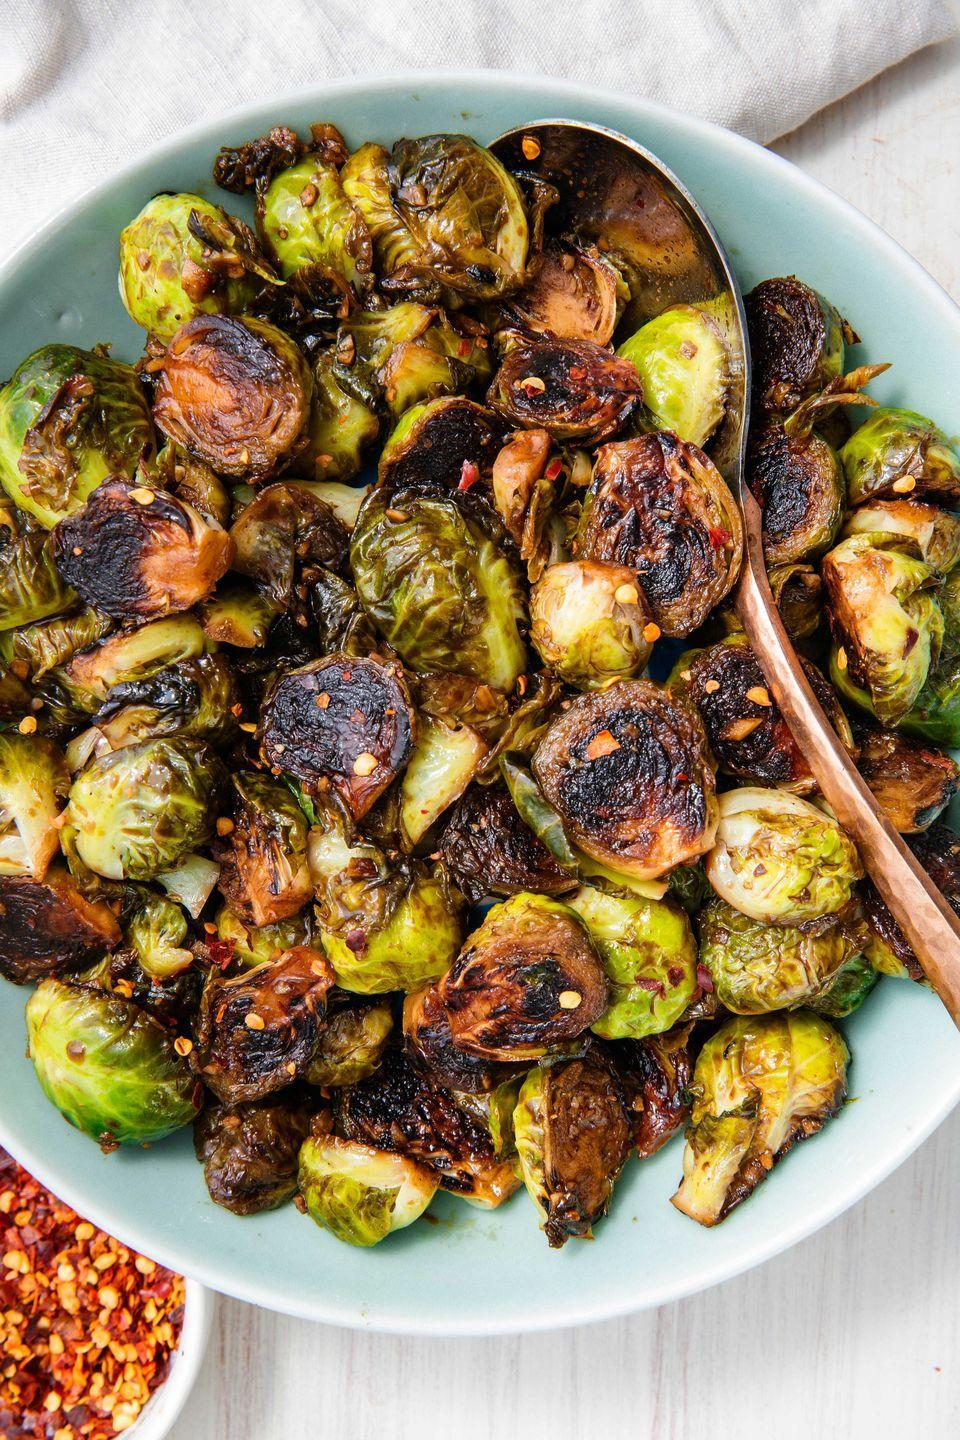 "<p>Add some veggies to the table in the most delicious way possible.</p><p>Get the recipe from <a href=""https://www.delish.com/holiday-recipes/thanksgiving/a23013160/honey-balsamic-glazed-brussels-sprouts-recipe/"" rel=""nofollow noopener"" target=""_blank"" data-ylk=""slk:Delish"" class=""link rapid-noclick-resp"">Delish</a>.</p>"